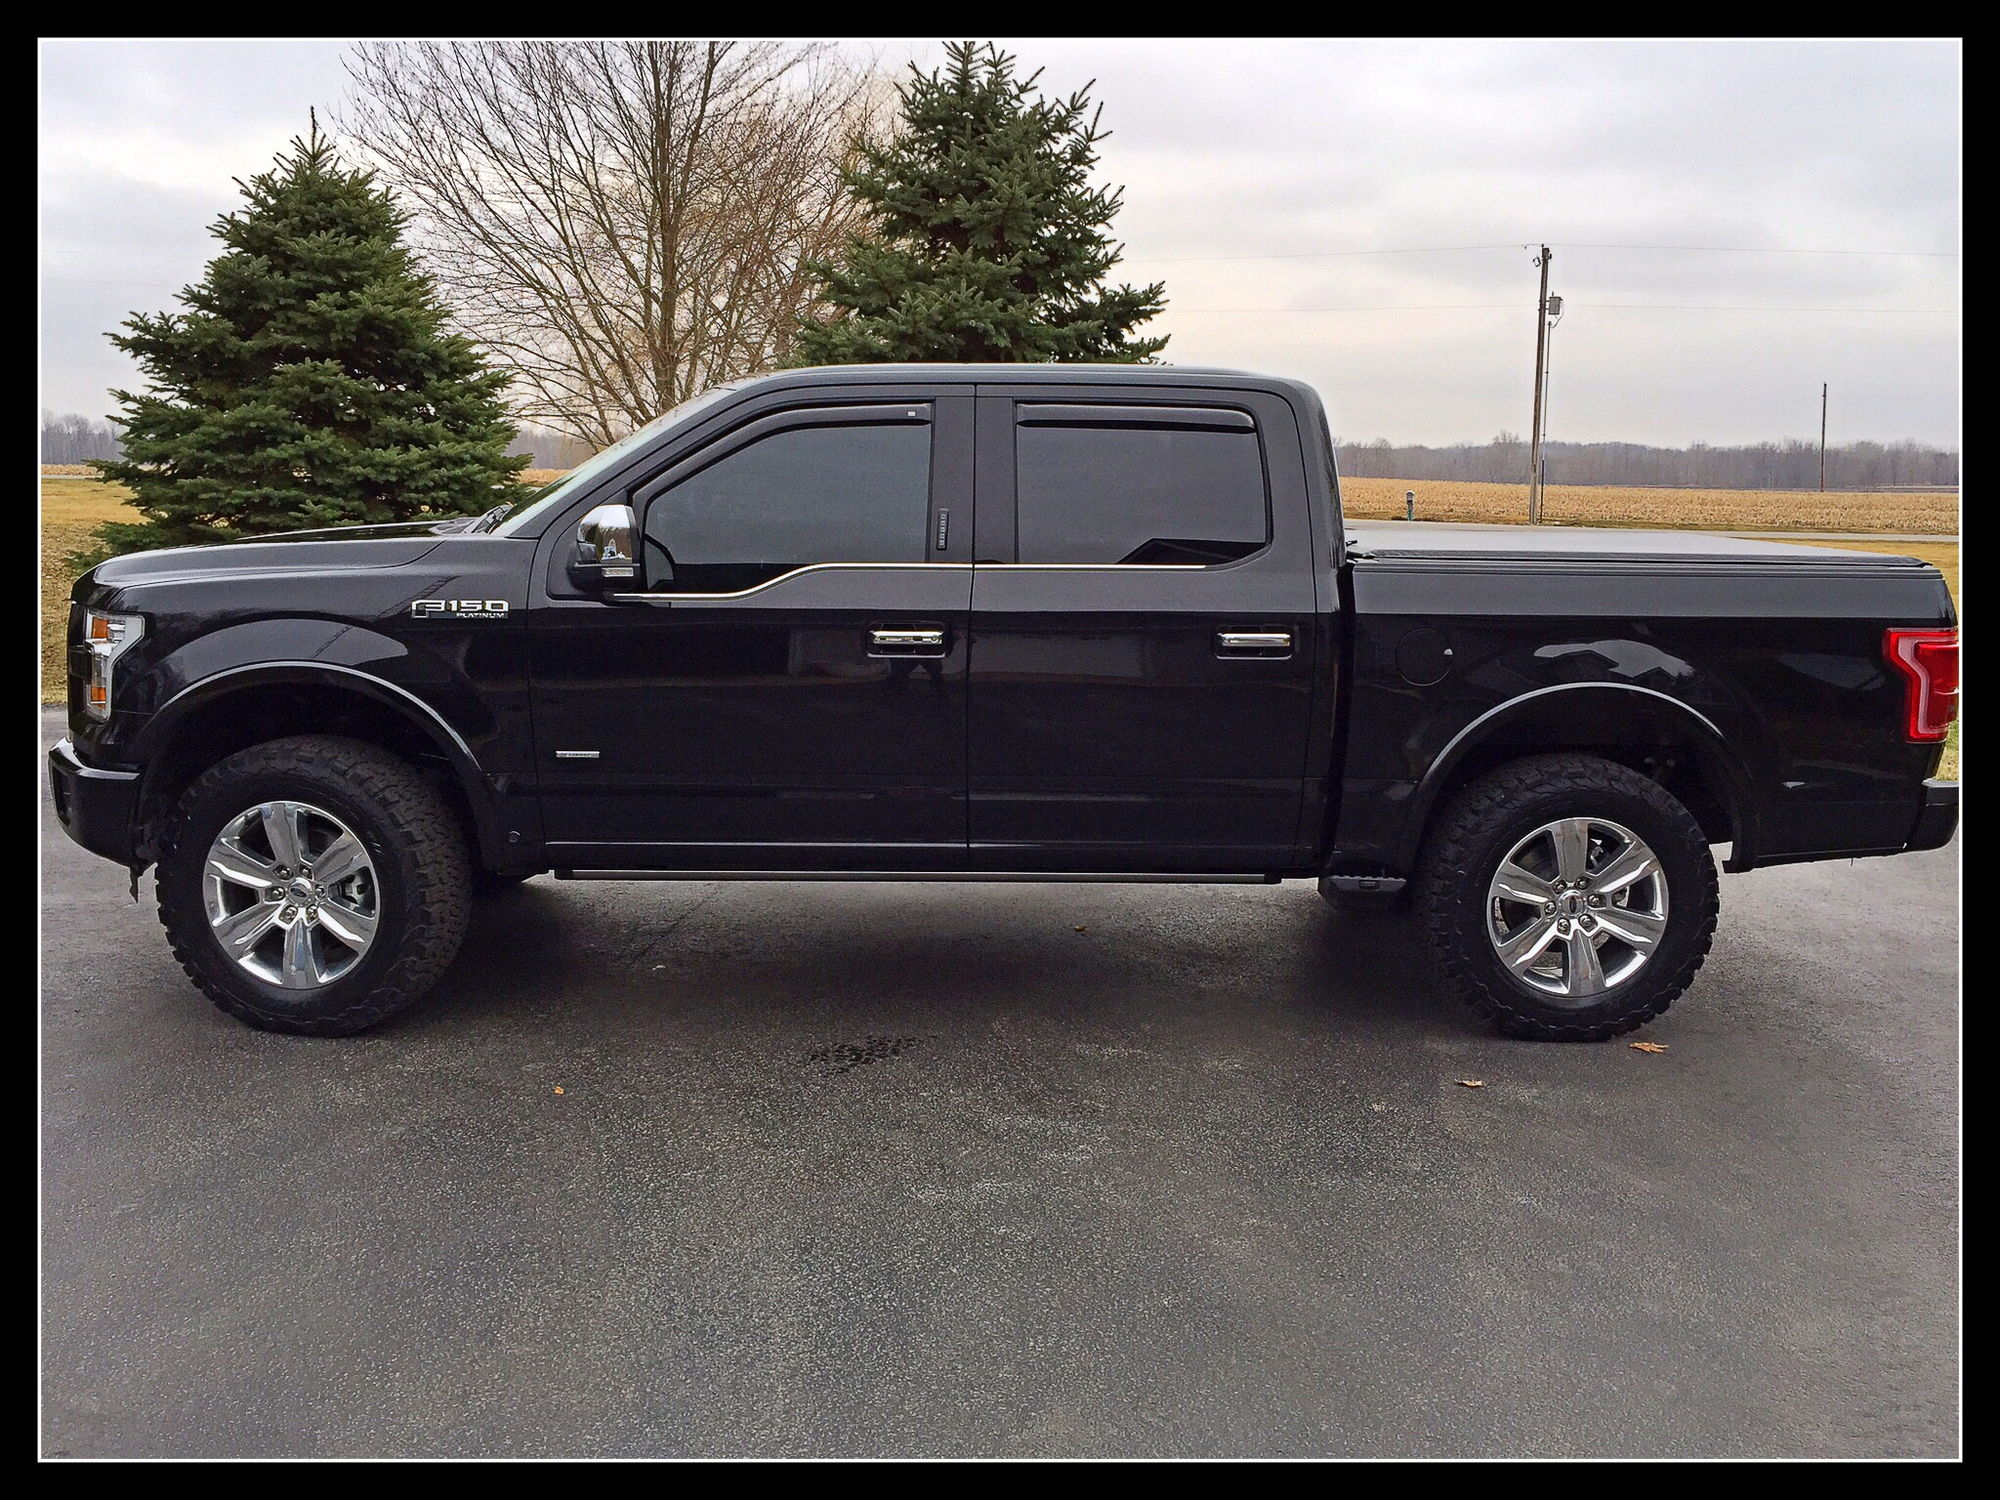 2015 tuxedo black platinum build ford f150 forum community of ford truck fans